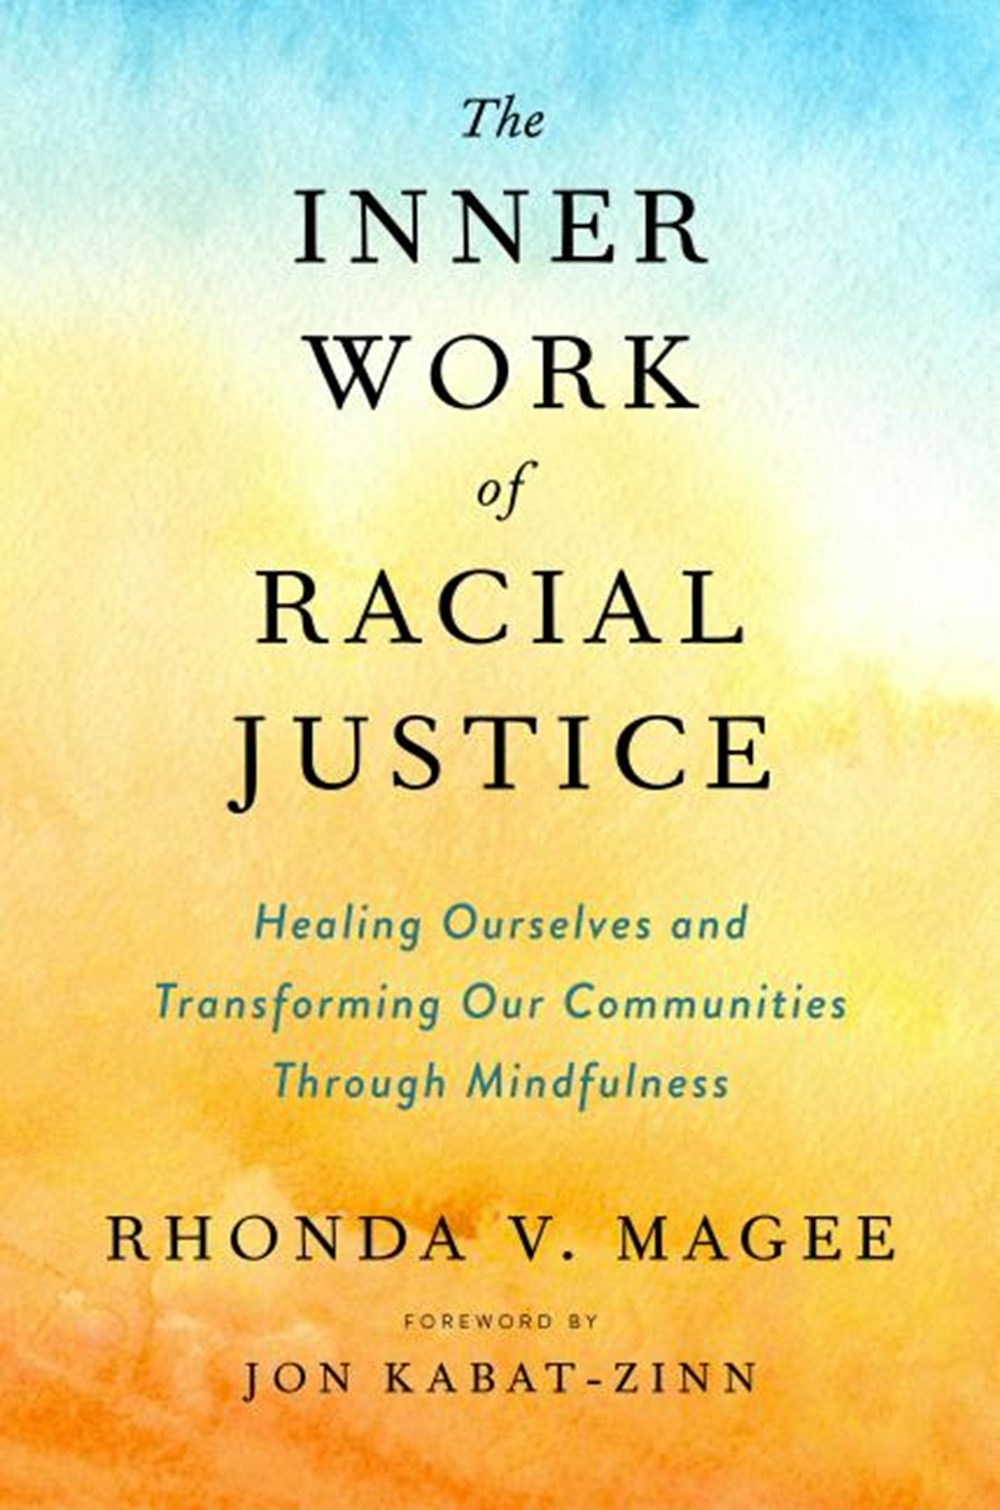 Inner Work of Racial Justice Healing Ourselves and Transforming Our Communities Through Mindfulness